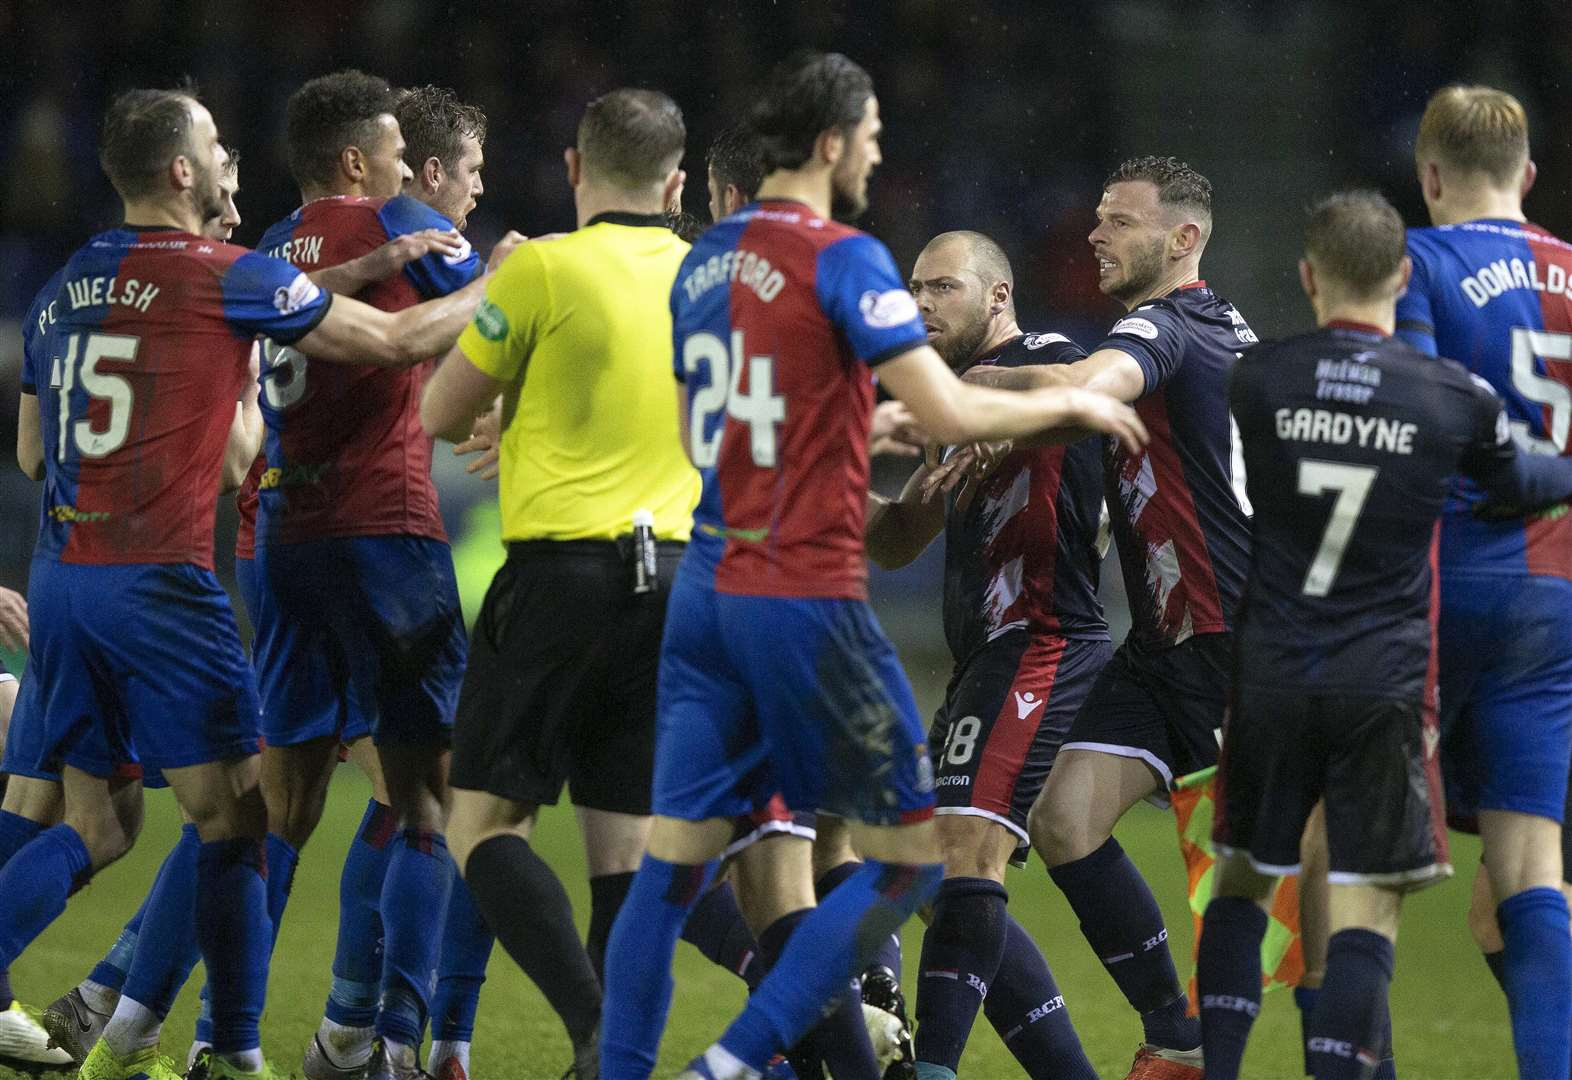 Inverness Caledonian Thistle and Ross County fined for Scottish Cup brawl